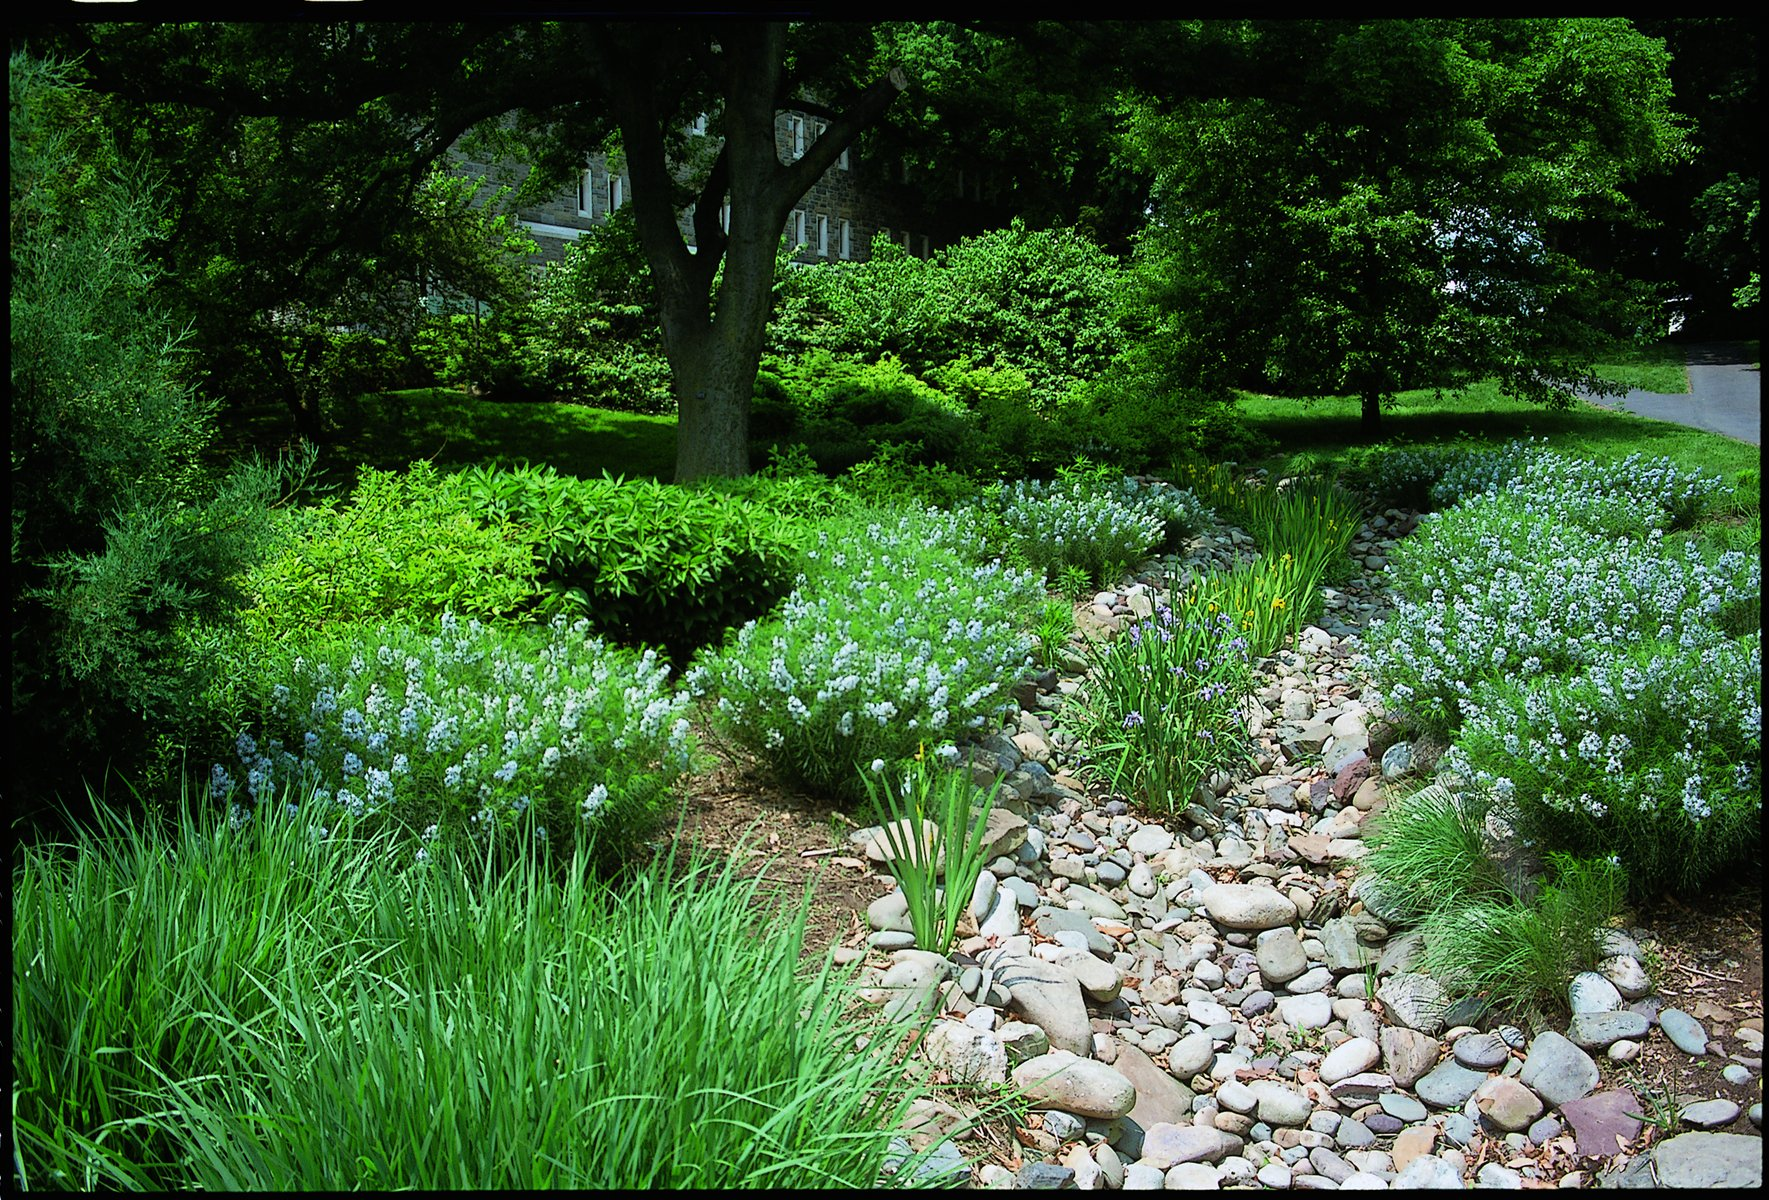 "Image of the Bio Stream located behind McCabe Library, as seen looking uphill towards Mccabe library when standing with Willets dorm to the right. This image shows a dry ""stream"" composed of rocks and pebbles snaking around.Green bushes with pale blue inflorescences line the Bio Stream. Daffodil-like plants, some with blue flowers, some with yellow, grow in the middle of the stream. Stone wall of Mccabe library is visible in the background, partially obscured by lush trees and bushes in the middle ground."